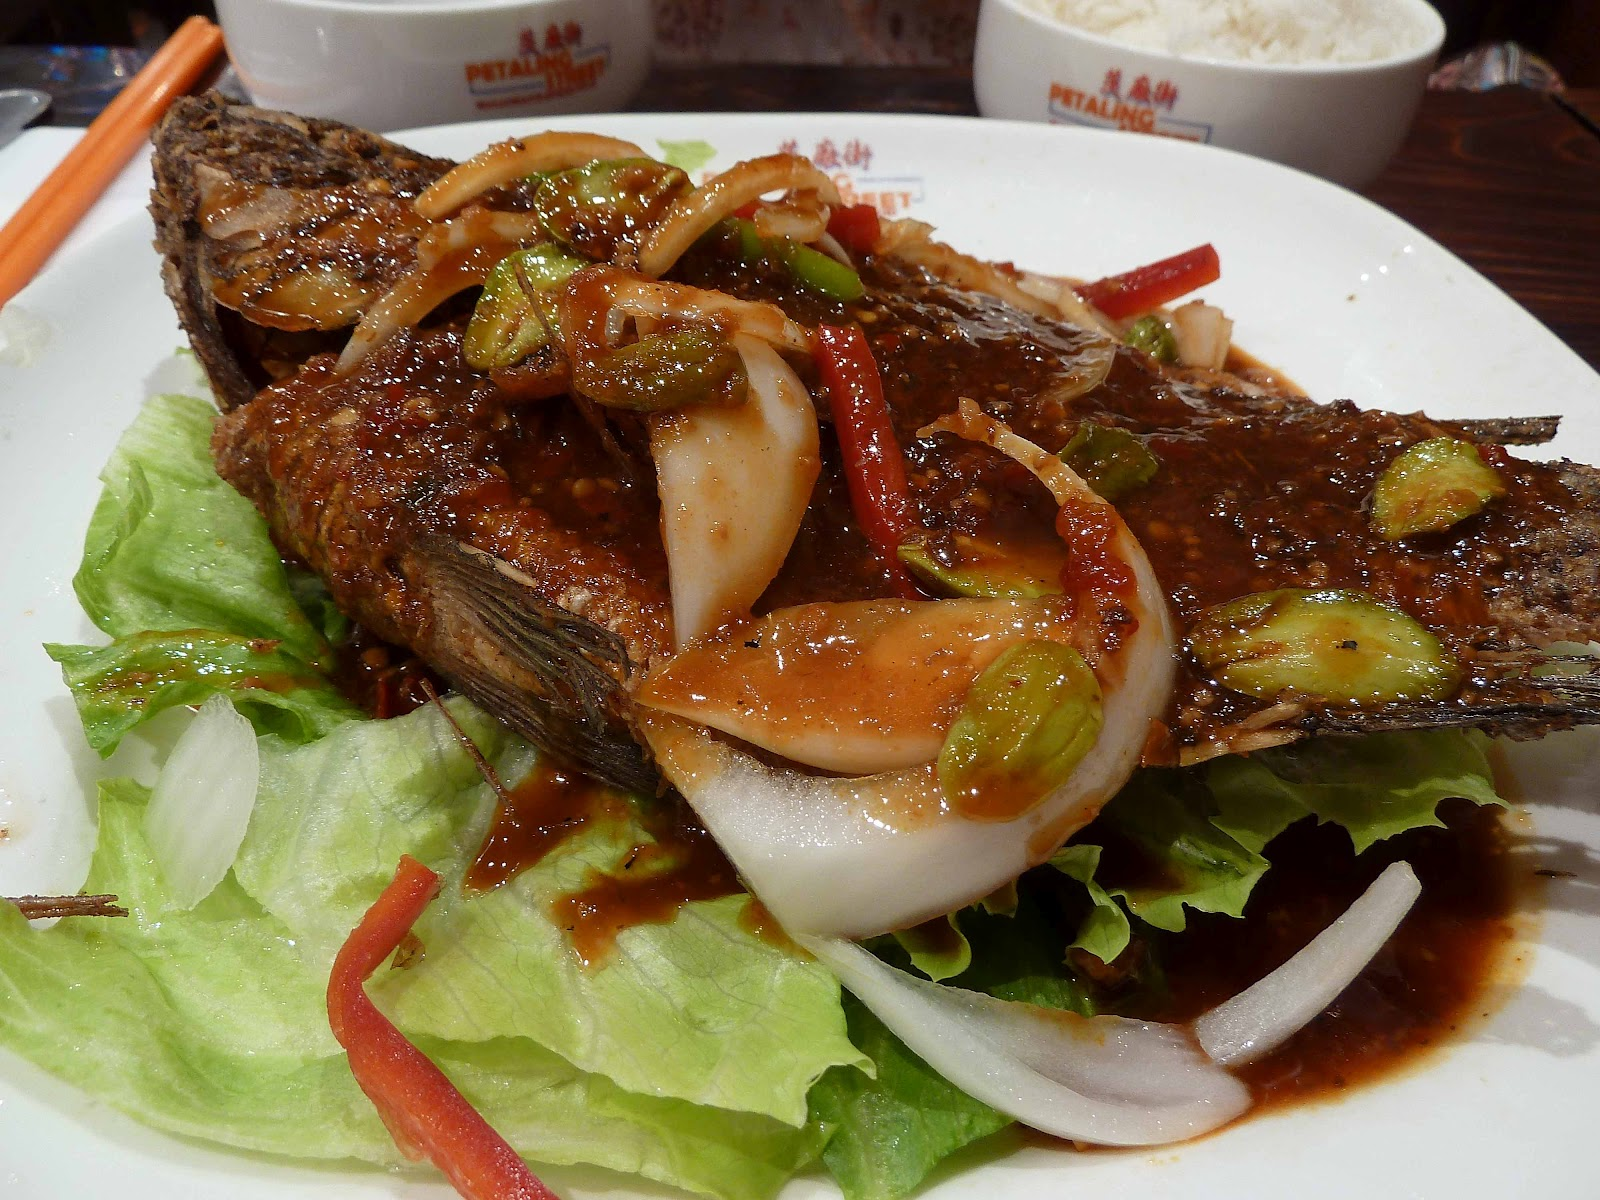 Petaling street review chinatown howie 39 s melbourne for Deep fried whole fish